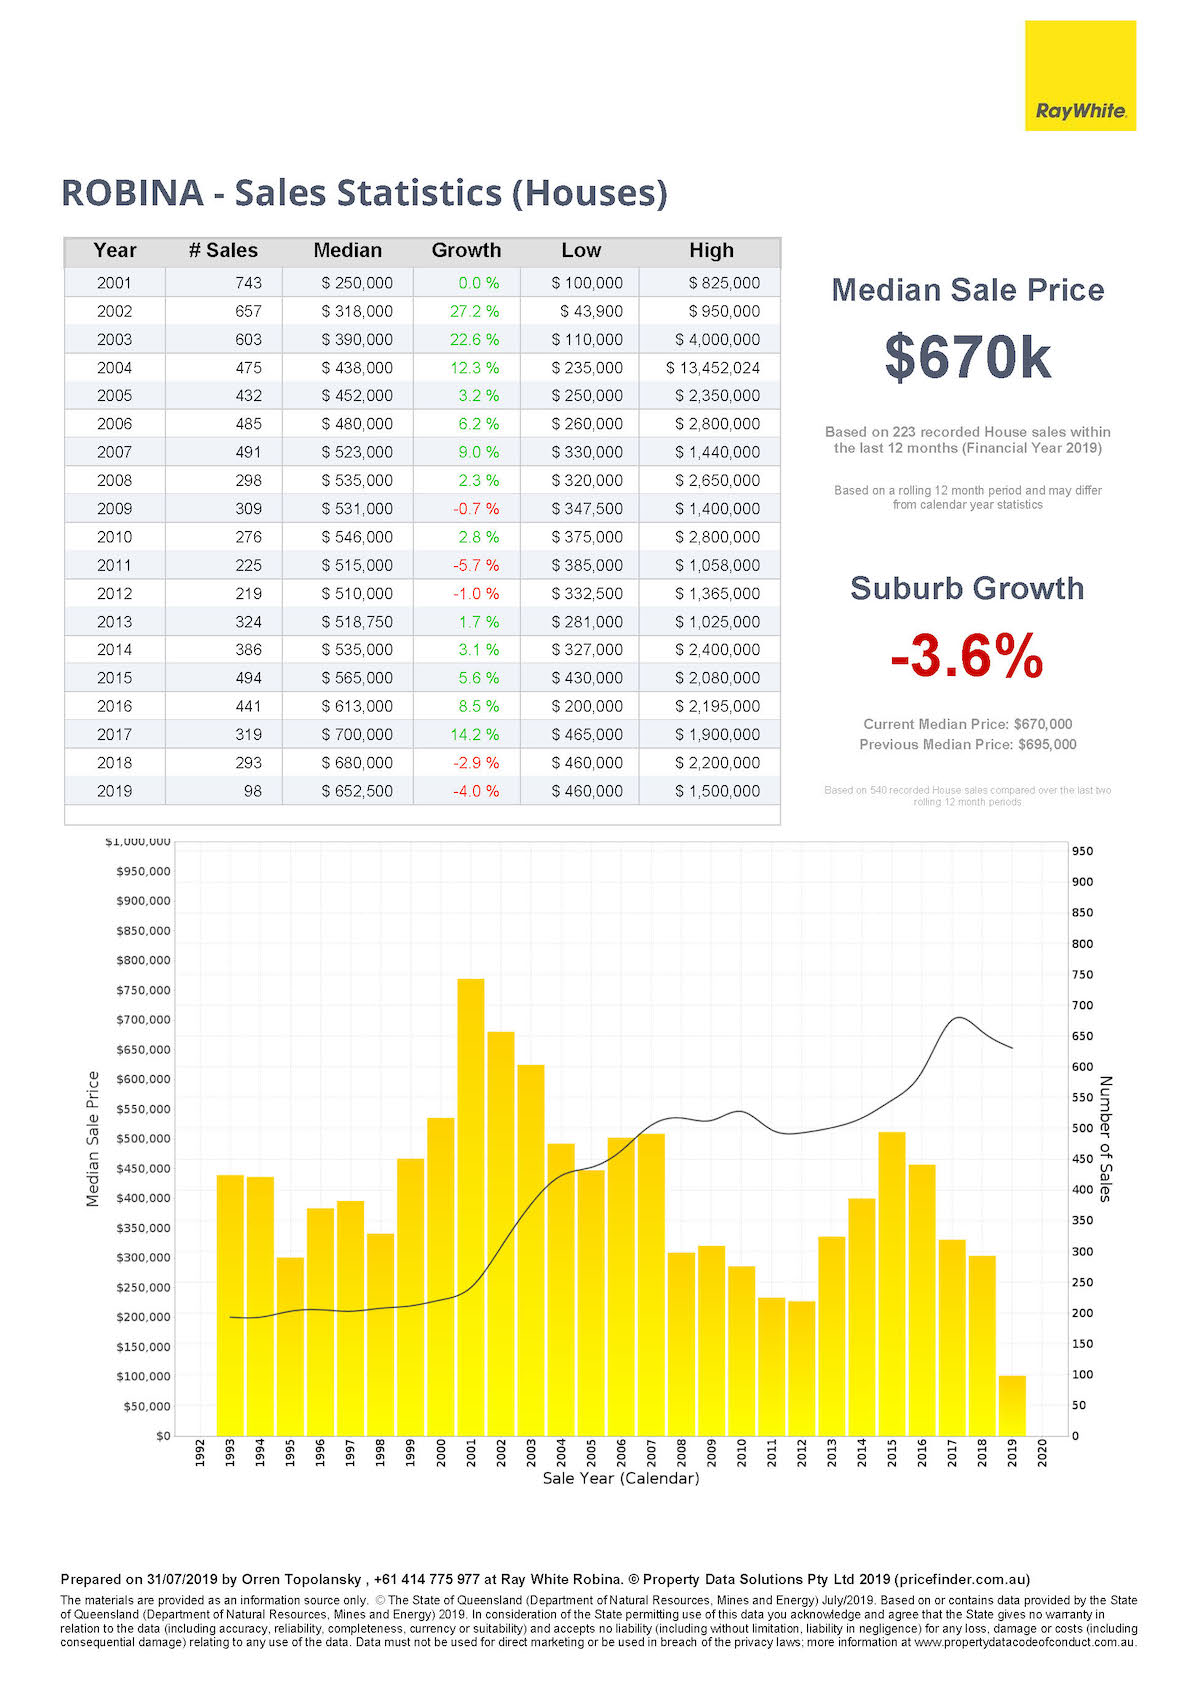 Sales statistics for houses in Robina, Gold Coast, Queensland